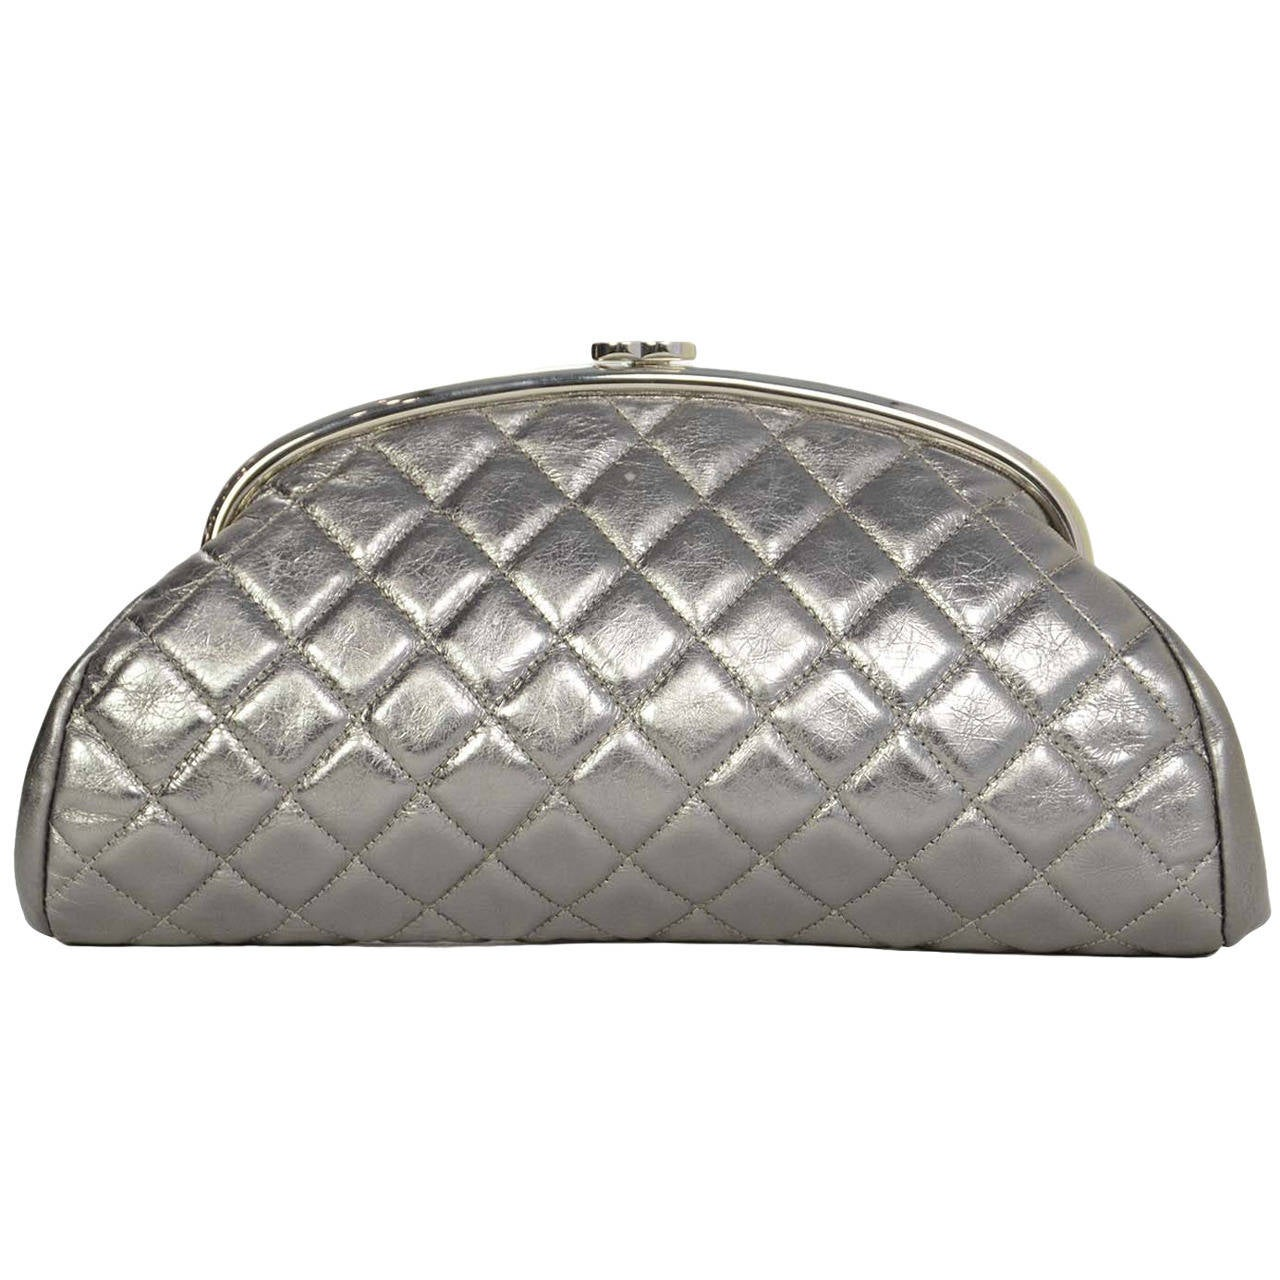 7e6ca75b480a CHANEL Metallic Pewter Quilted Timeless Clutch Bag SHW at 1stdibs